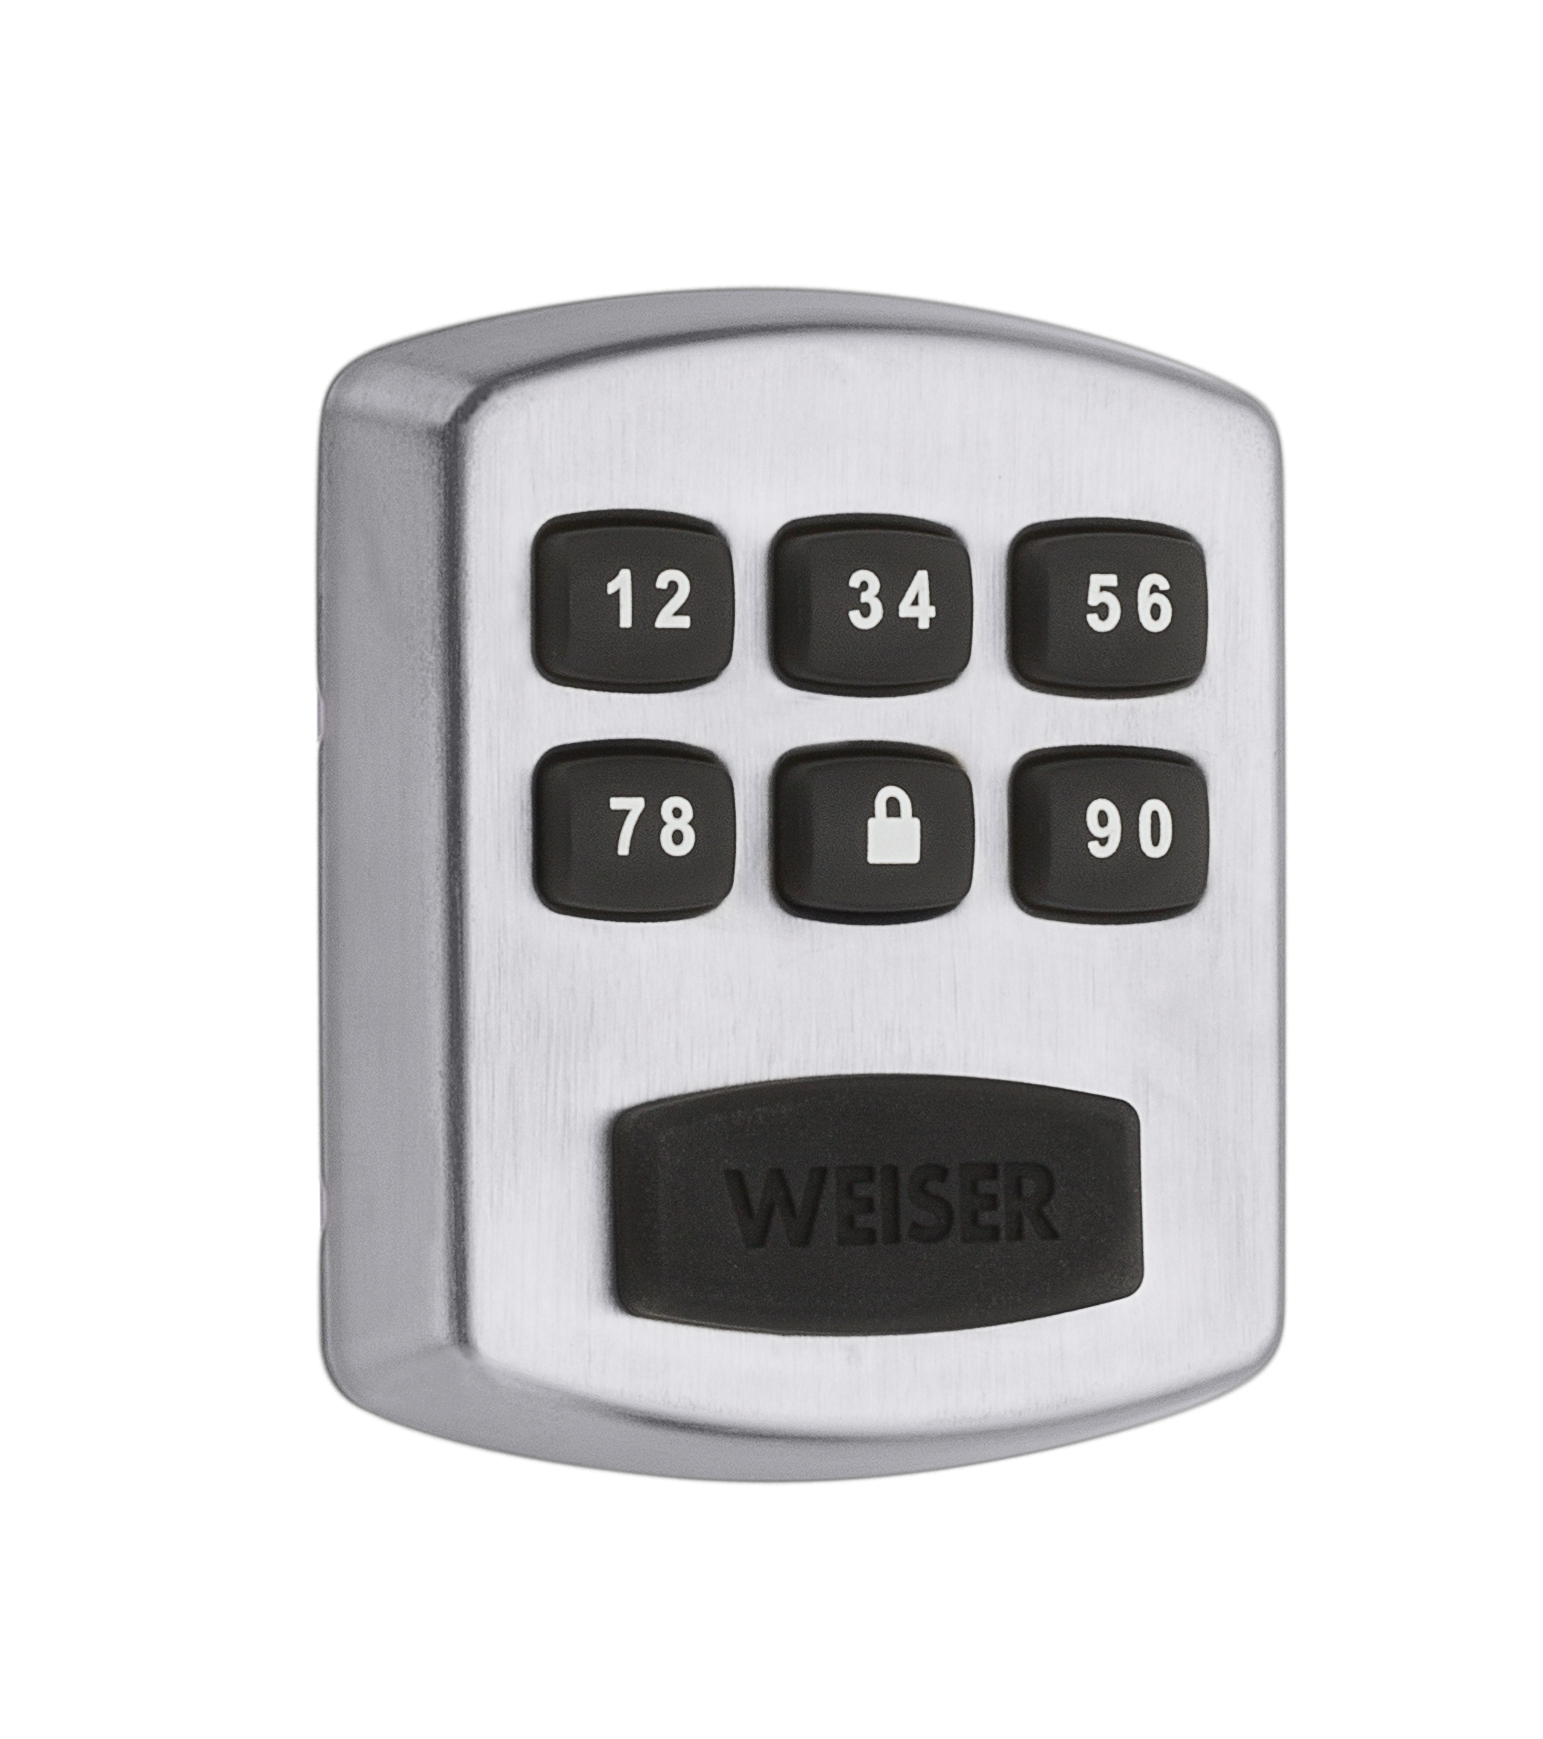 Powerbolt 1 Residential Electronic Locks Product Image Thumbnail